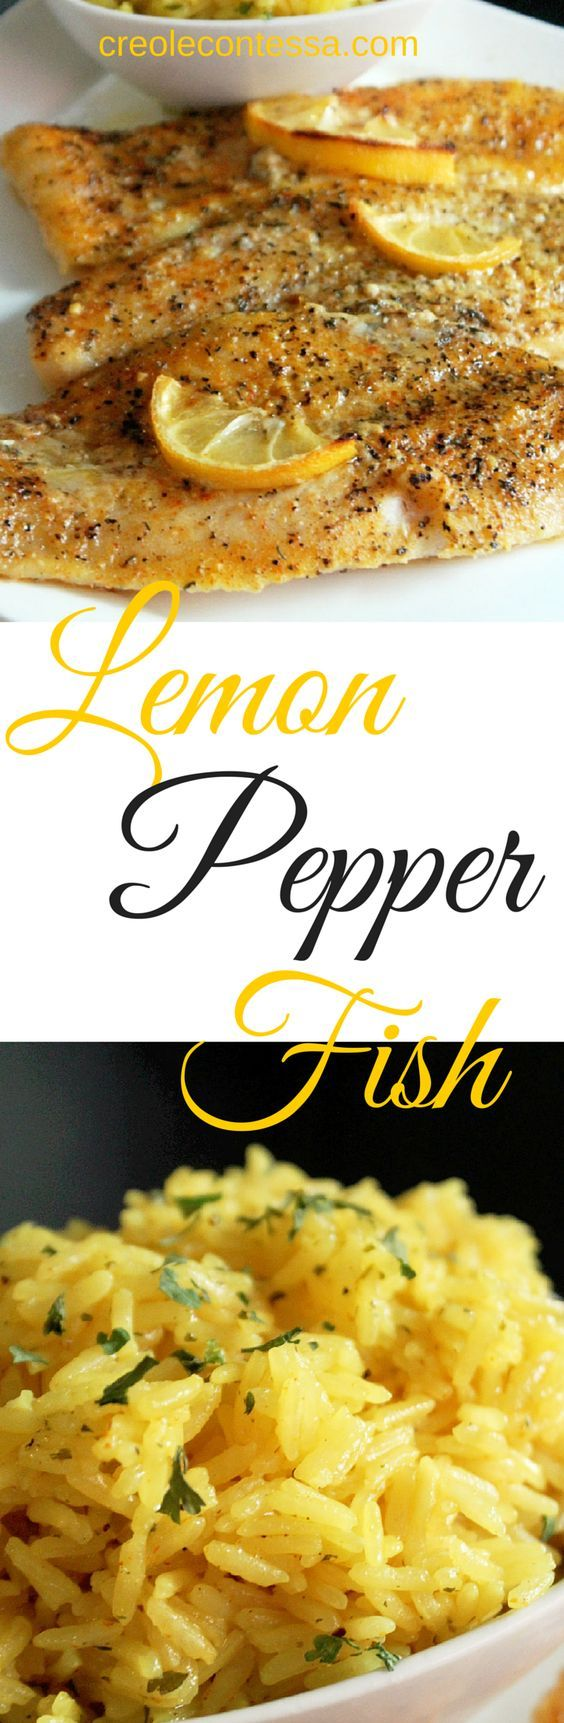 Lemon Pepper Fish with Lemon Butter Rice-Creole Contessa